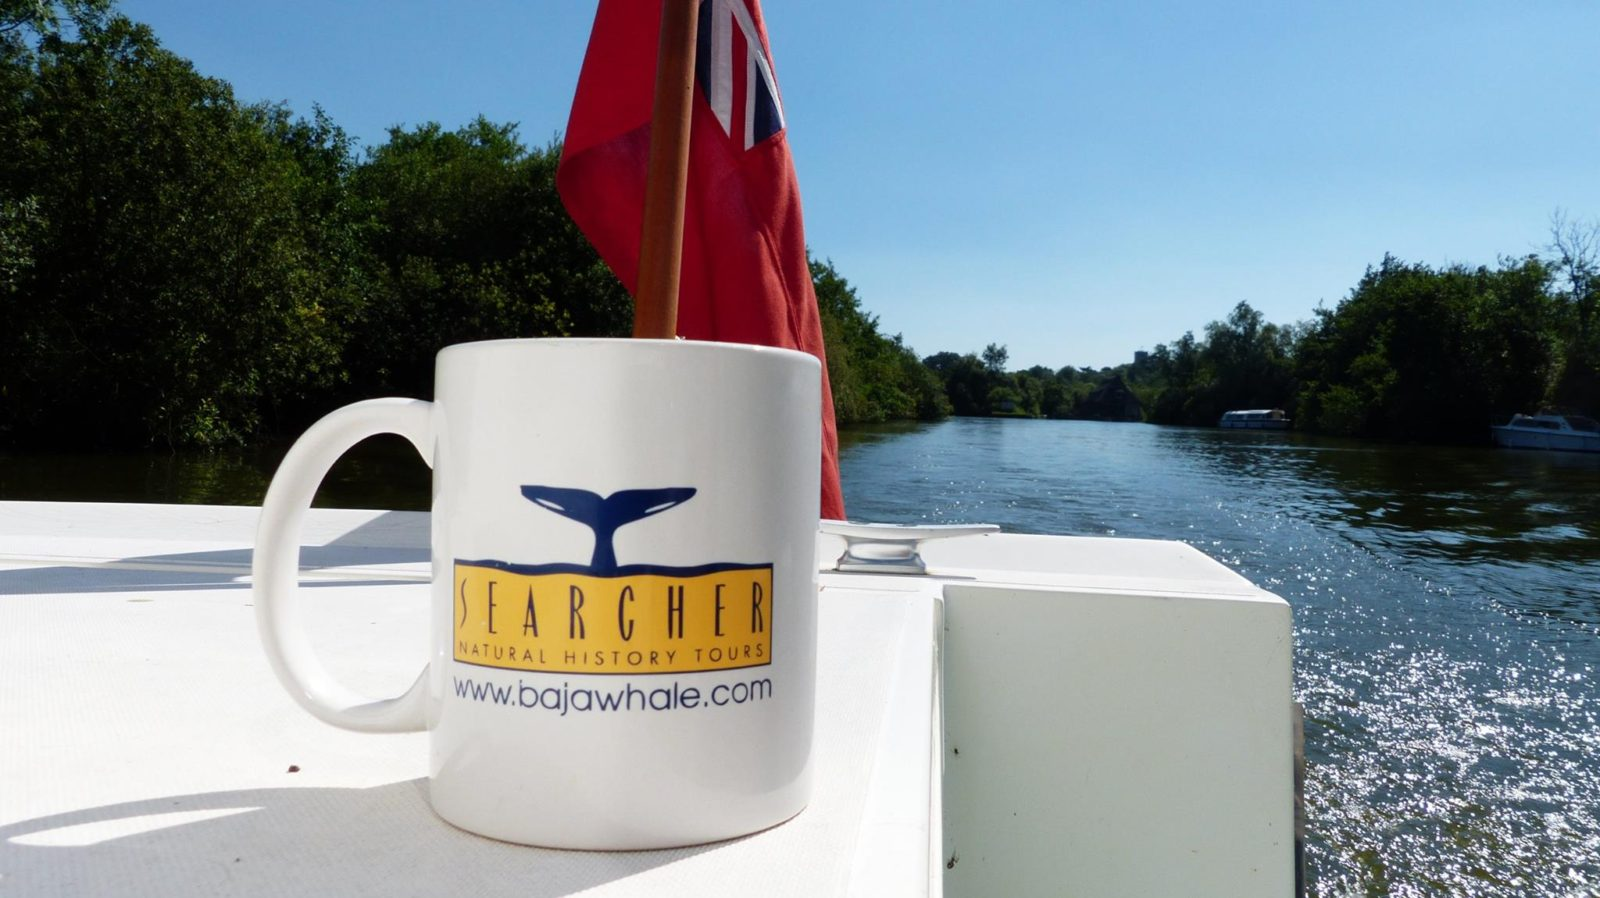 Where in the world is your Searcher Natural History Tour mug?!